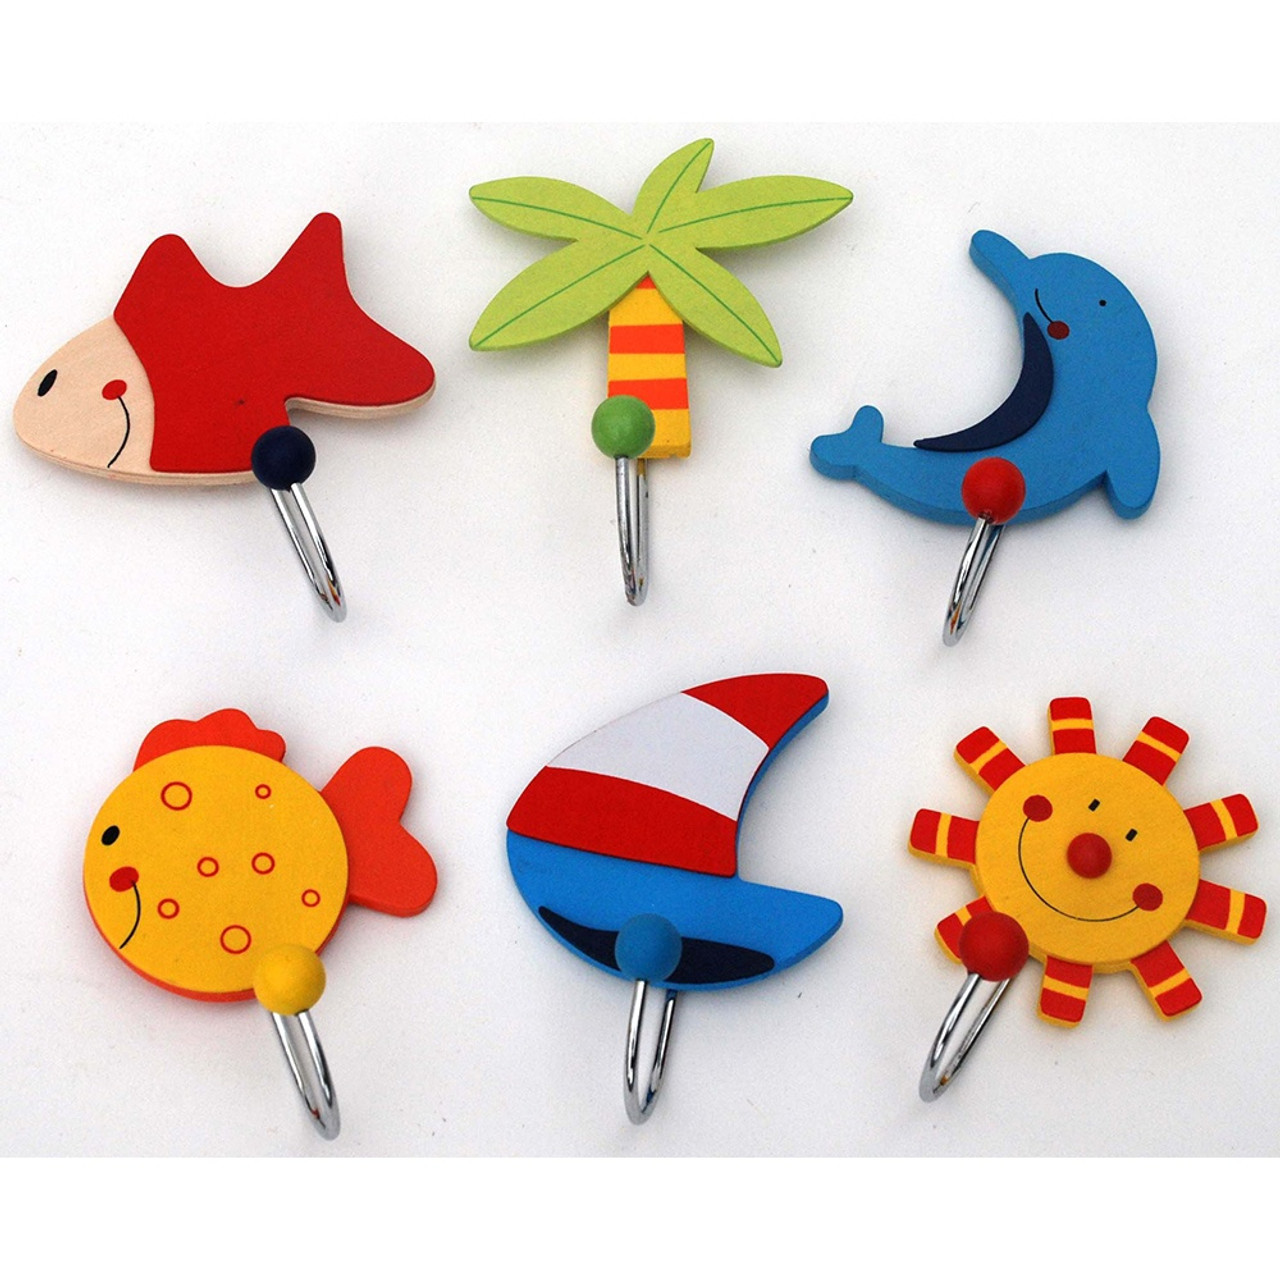 Toyslink Ornamental Wall Hook at Baby Barn Discounts Hanger hook from Toyslink that is screw mount onto the wall.